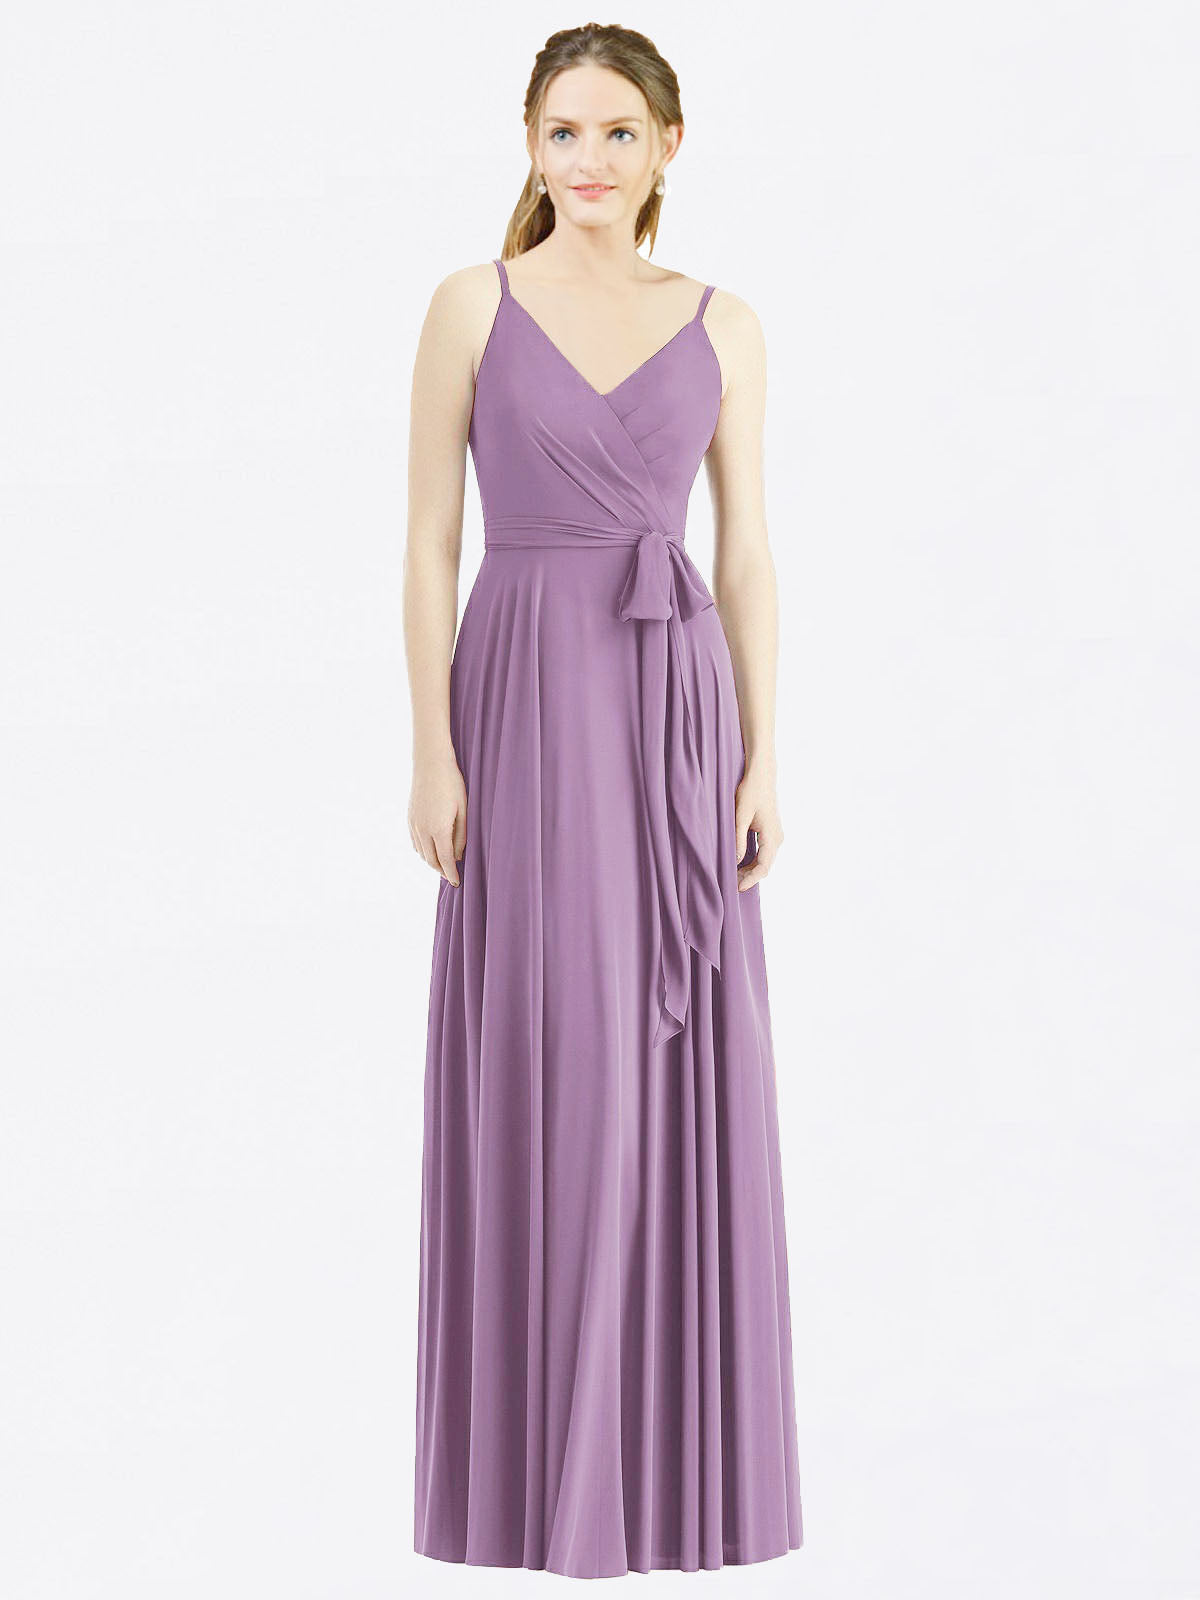 Long A-Line Spaghetti Straps, V-Neck Sleeveless Dark Lavender Chiffon Bridesmaid Dress Madilyn